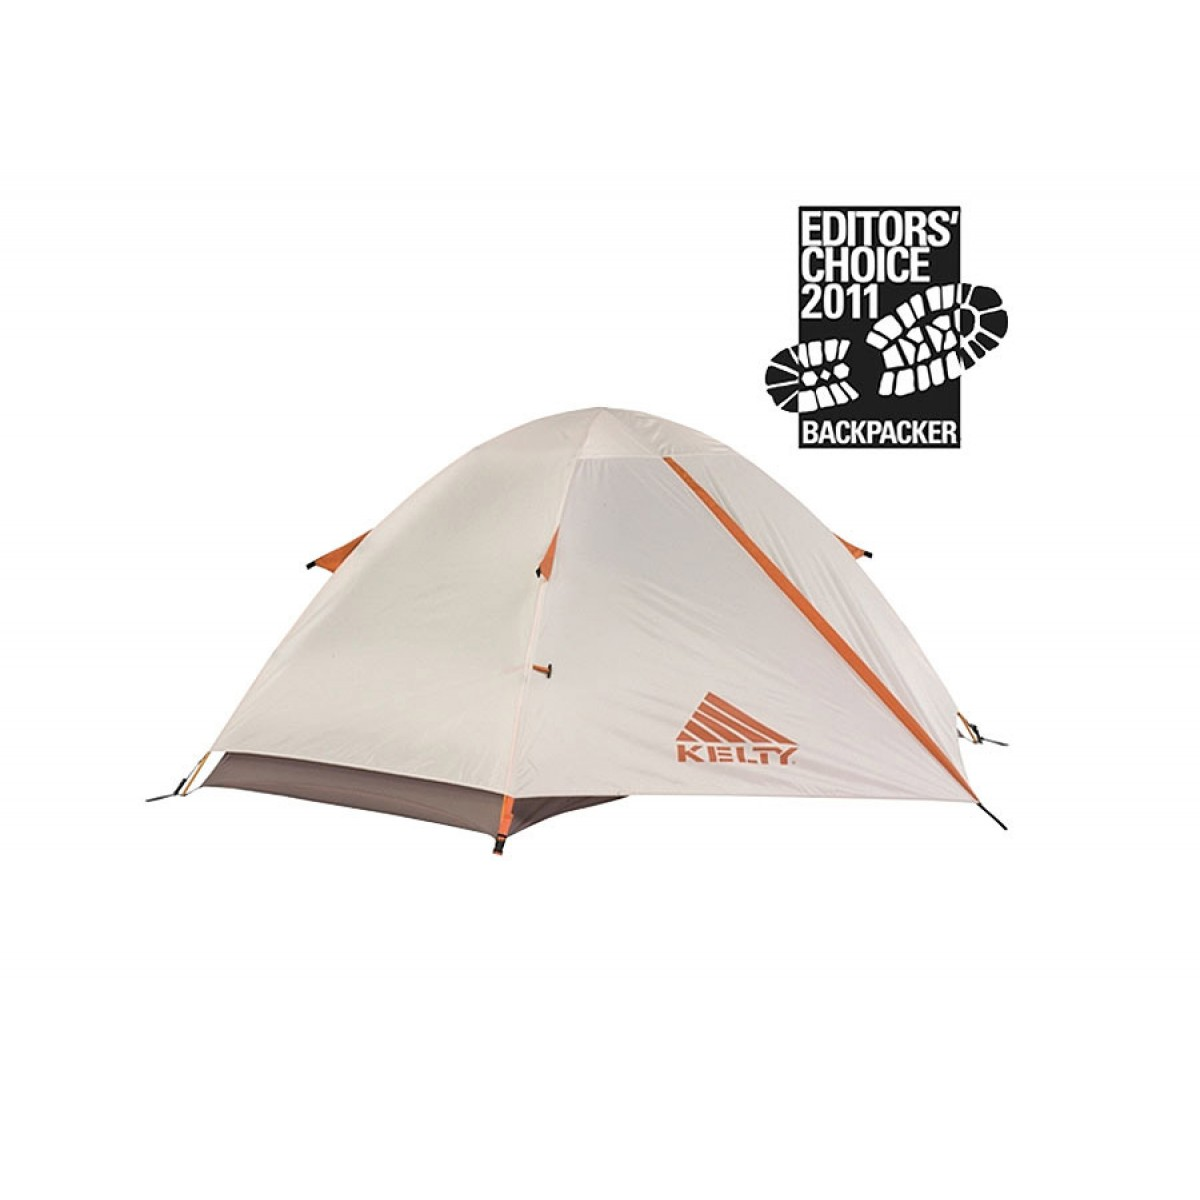 ... Kelty Salida 2 Person Tent 40812211 Image 2 ...  sc 1 st  Kellyco & Kelty Salida 2 Person Tent- Kellyco